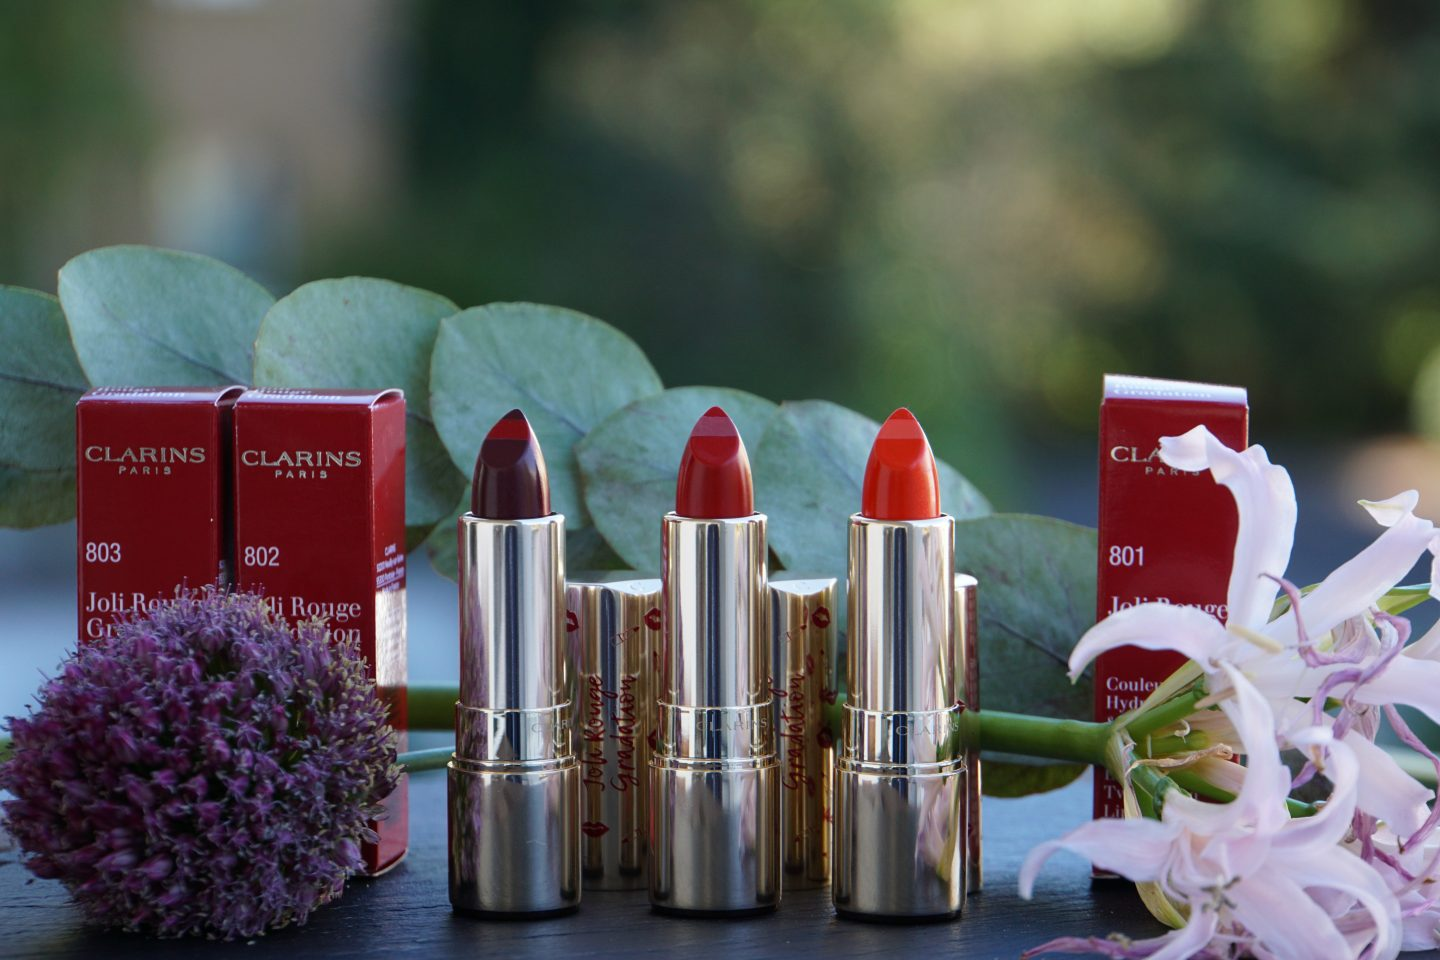 Clarins Joli Rouge gradation Herbst 2018 801 coral gradation 802 red gradation 803 plum gradation